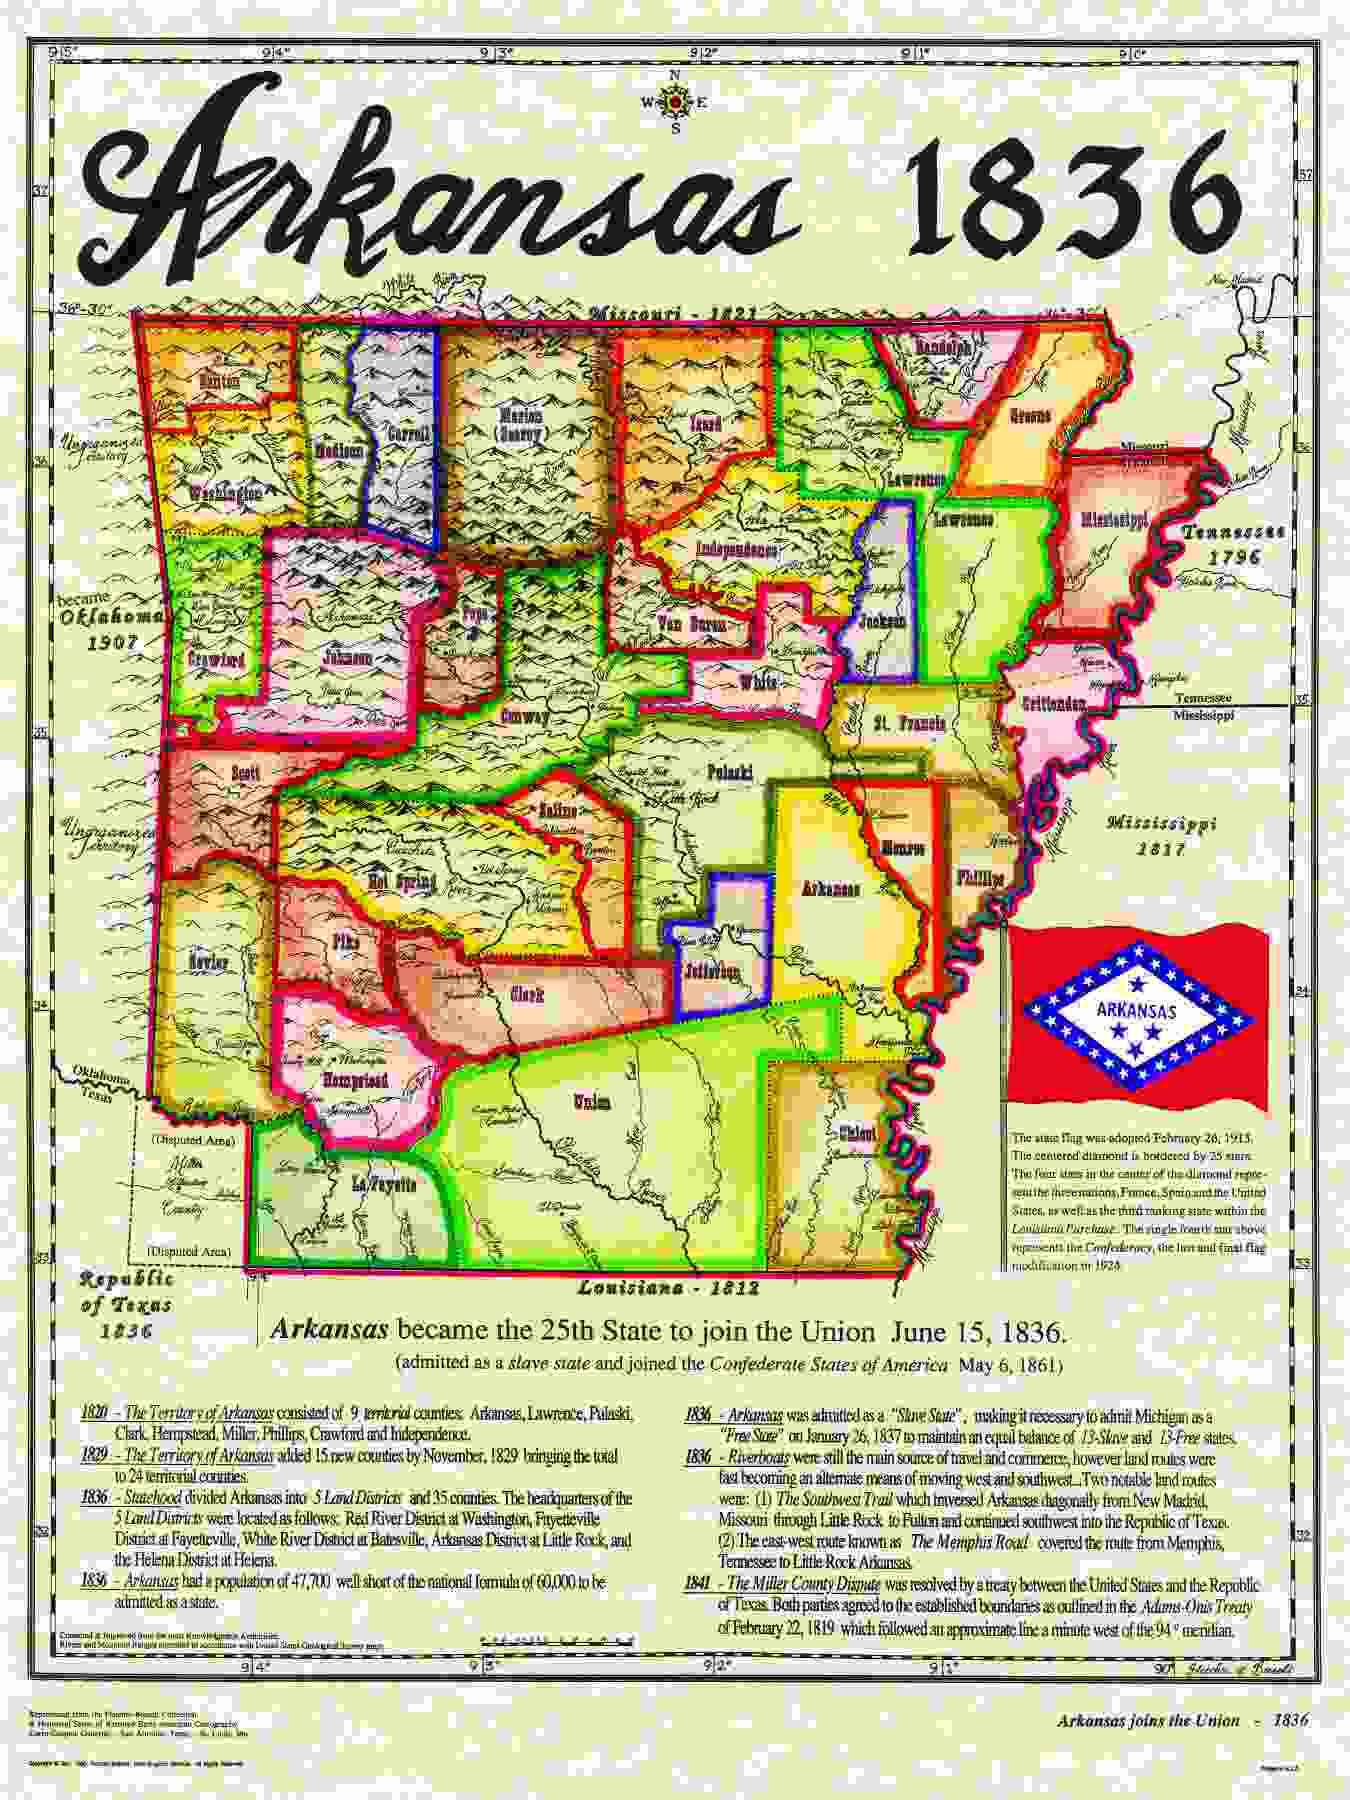 june 15 1836 Arkansas became the 25th State of the United States of America